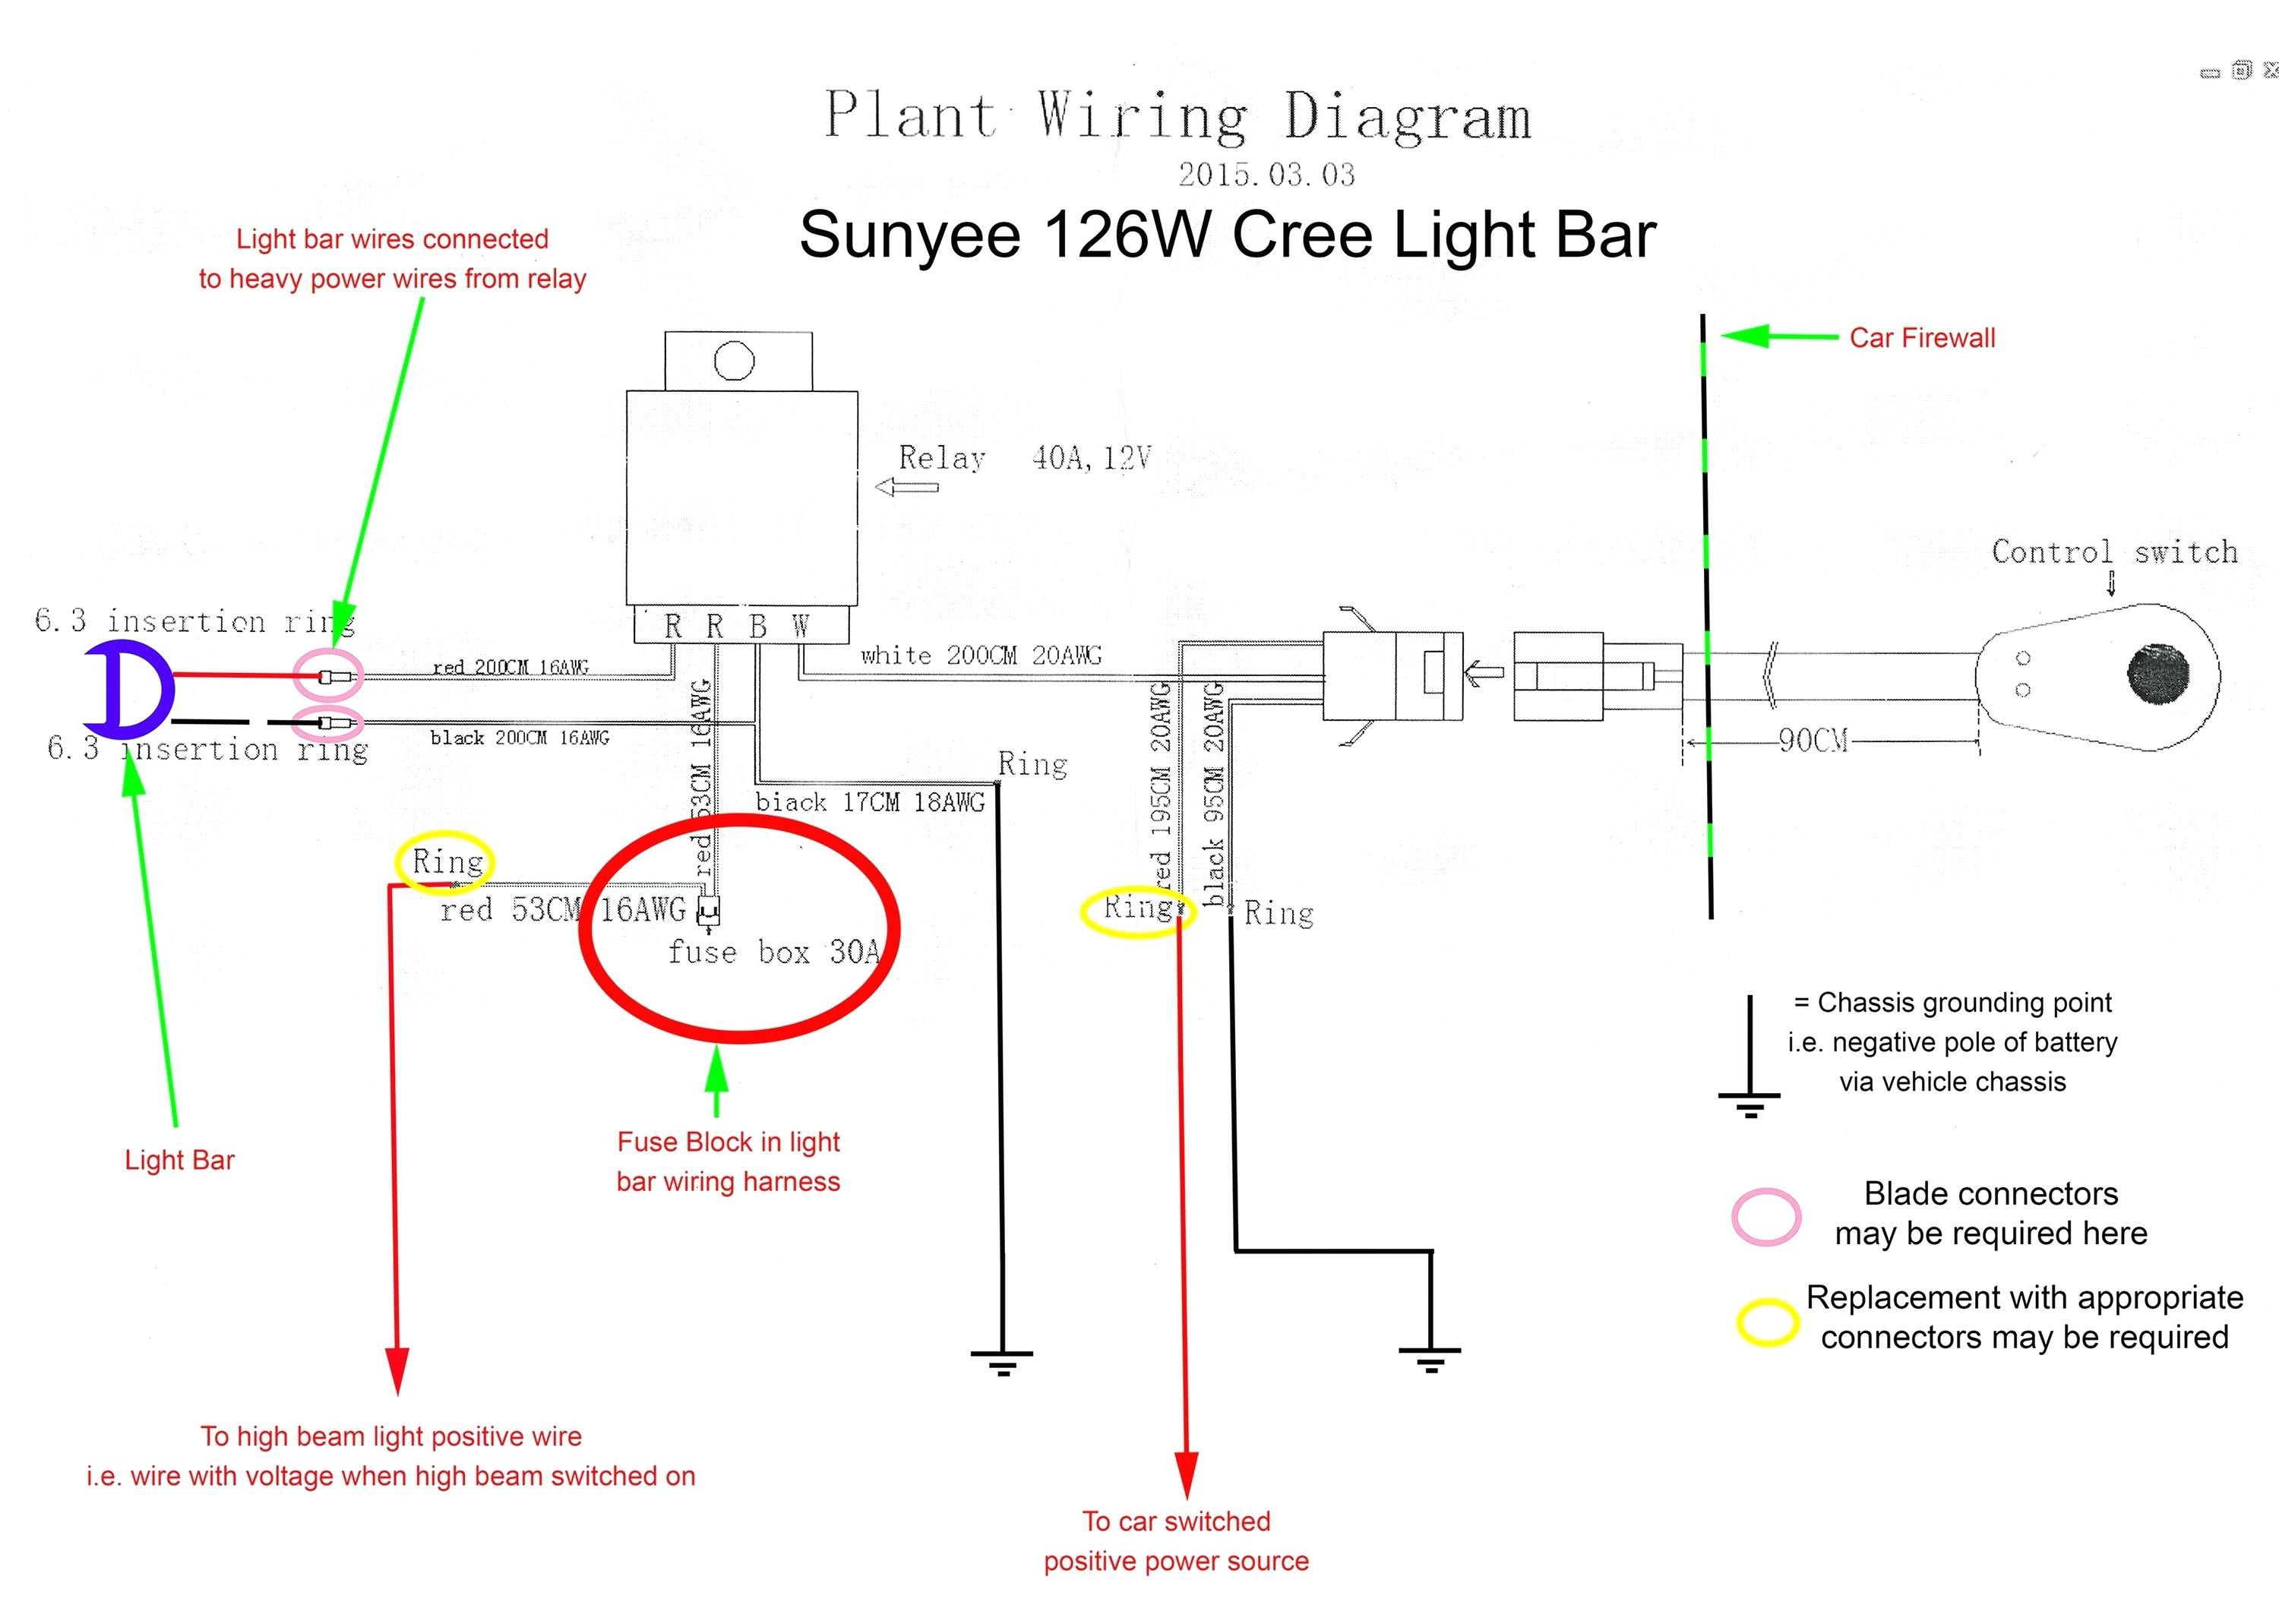 Led tube light wiring diagram wiring diagram led tube light wiring diagram my wiring diagram t8 tube wiring diagram convert fluorescent to led asfbconference2016 Image collections